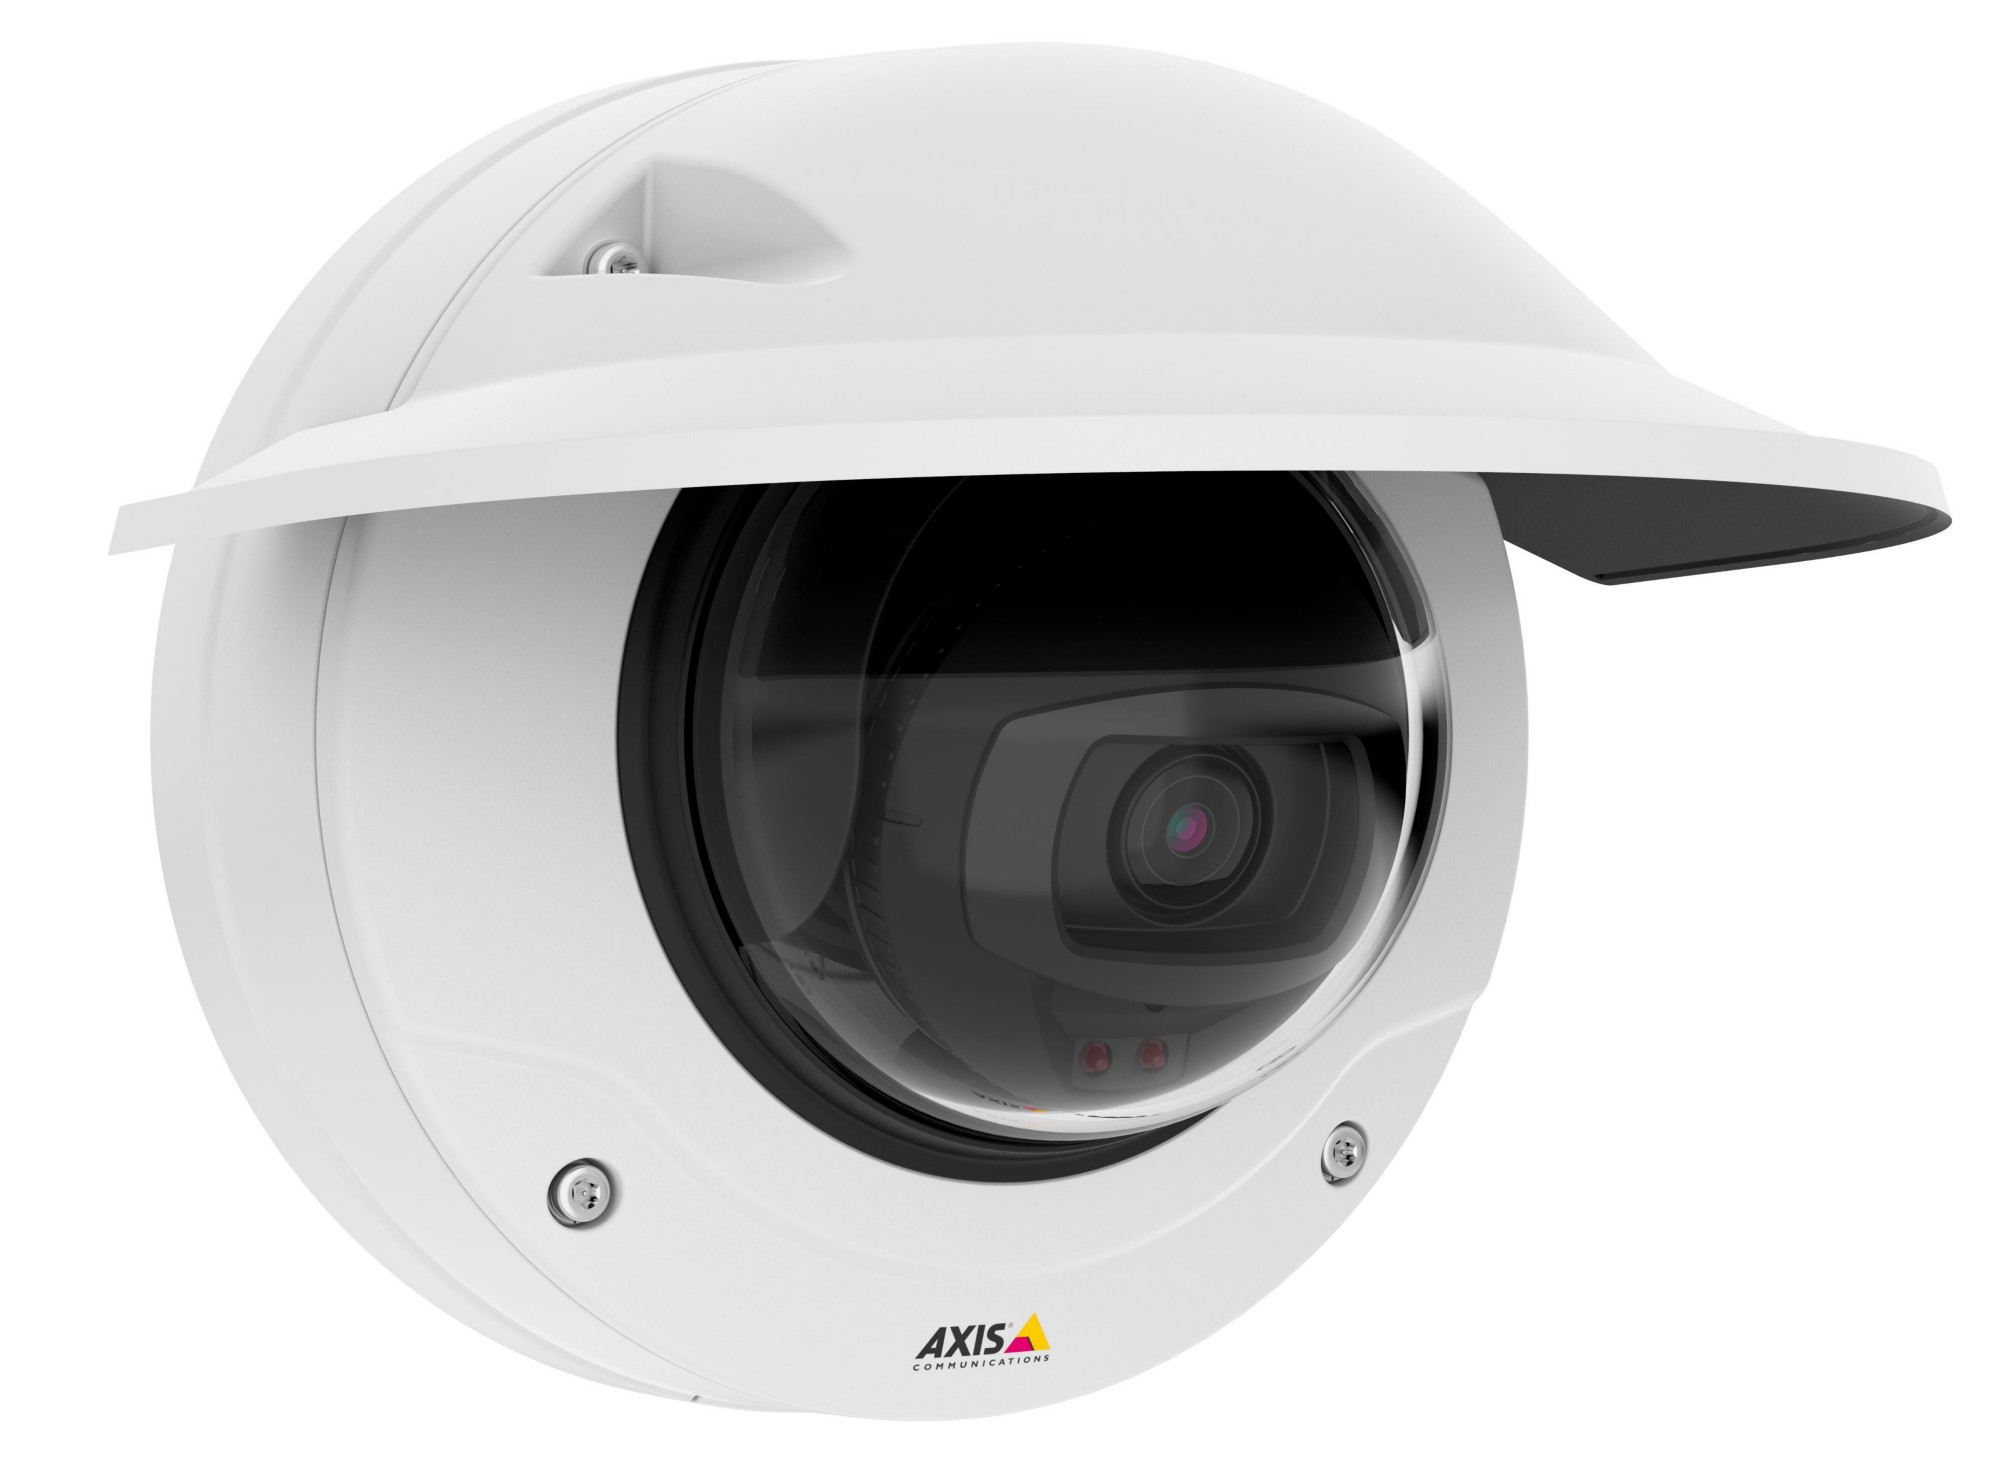 AXIS 01041-001 Q3515-LVE IP SECURITY CAMERA OUTDOOR DOME WHITE 1920 X 1080PIXELS